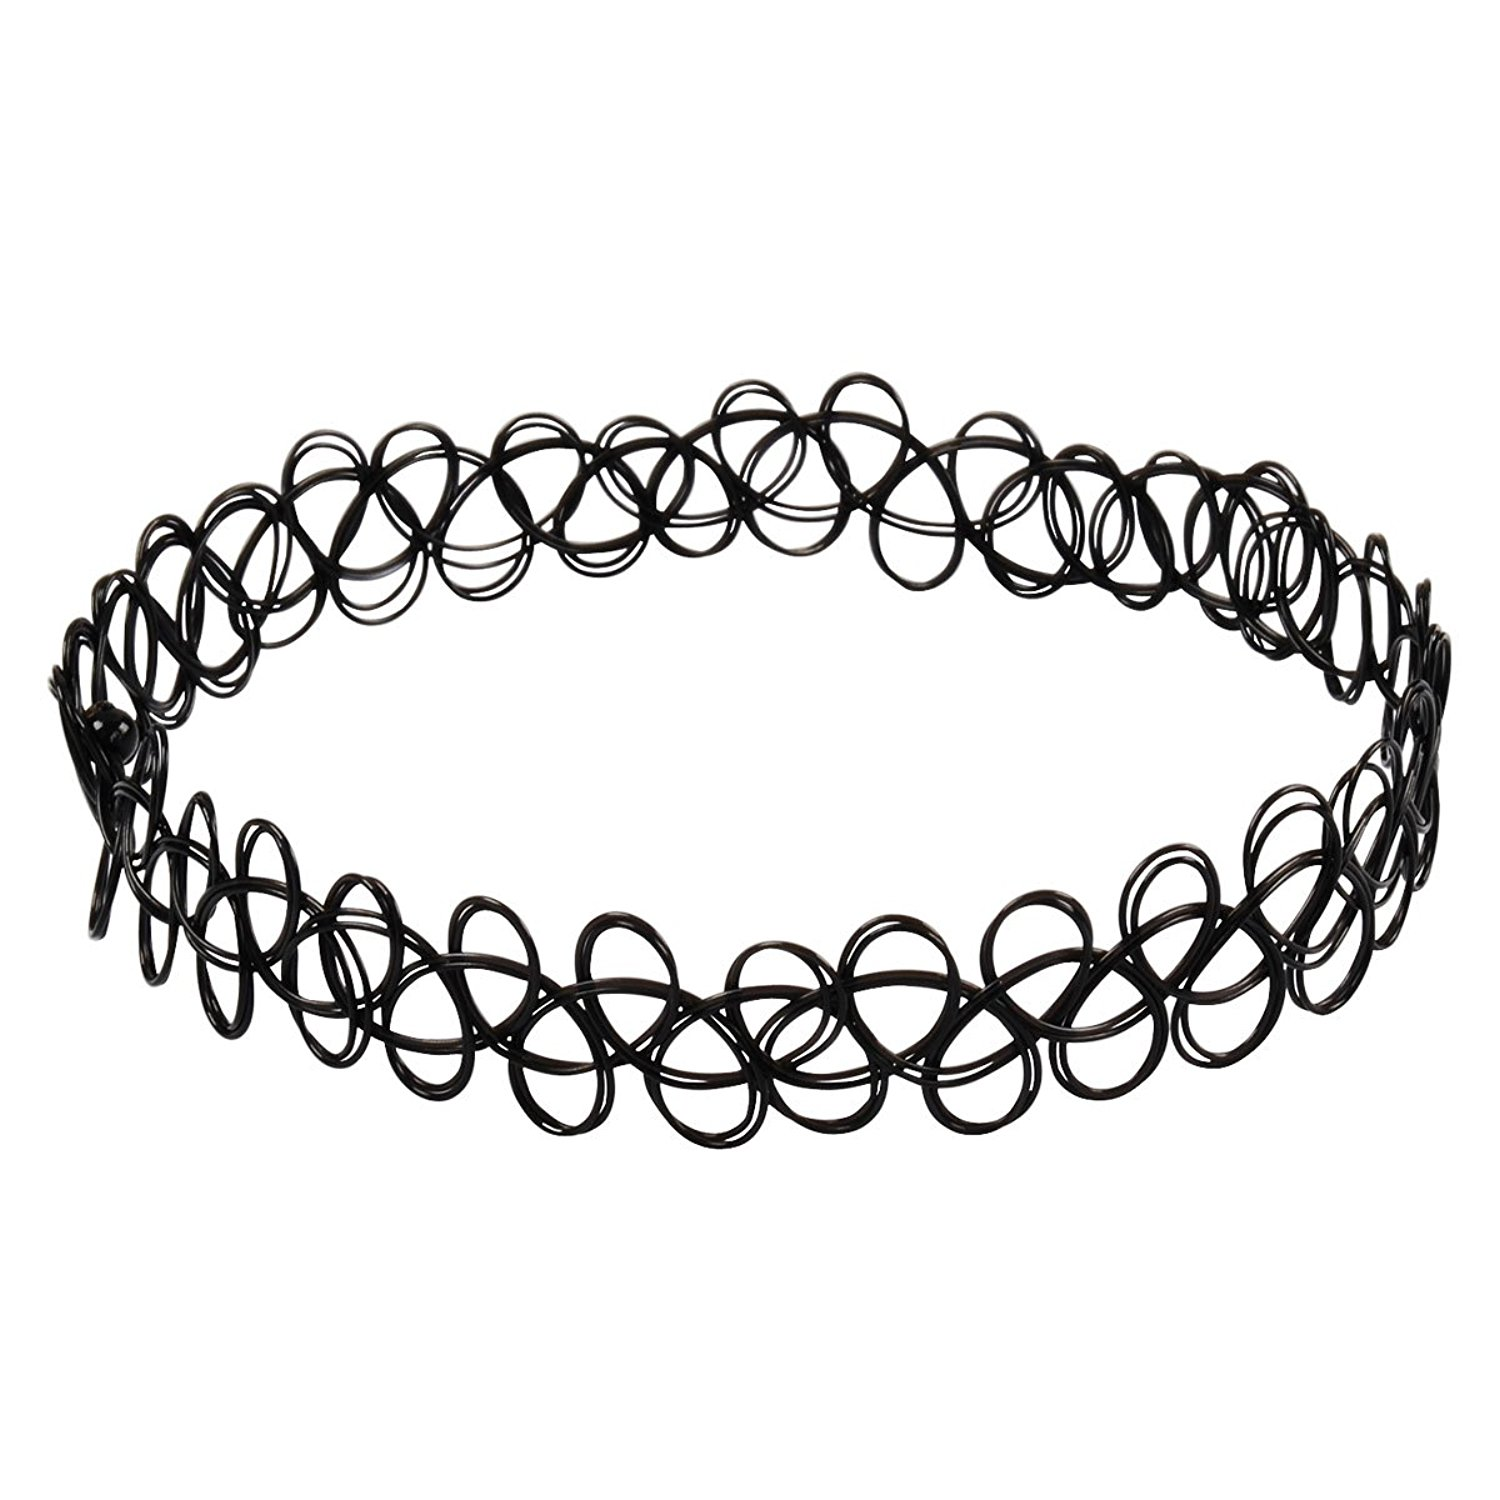 Generic Jane Stone Choker Black Stretch Gothic Tattoo